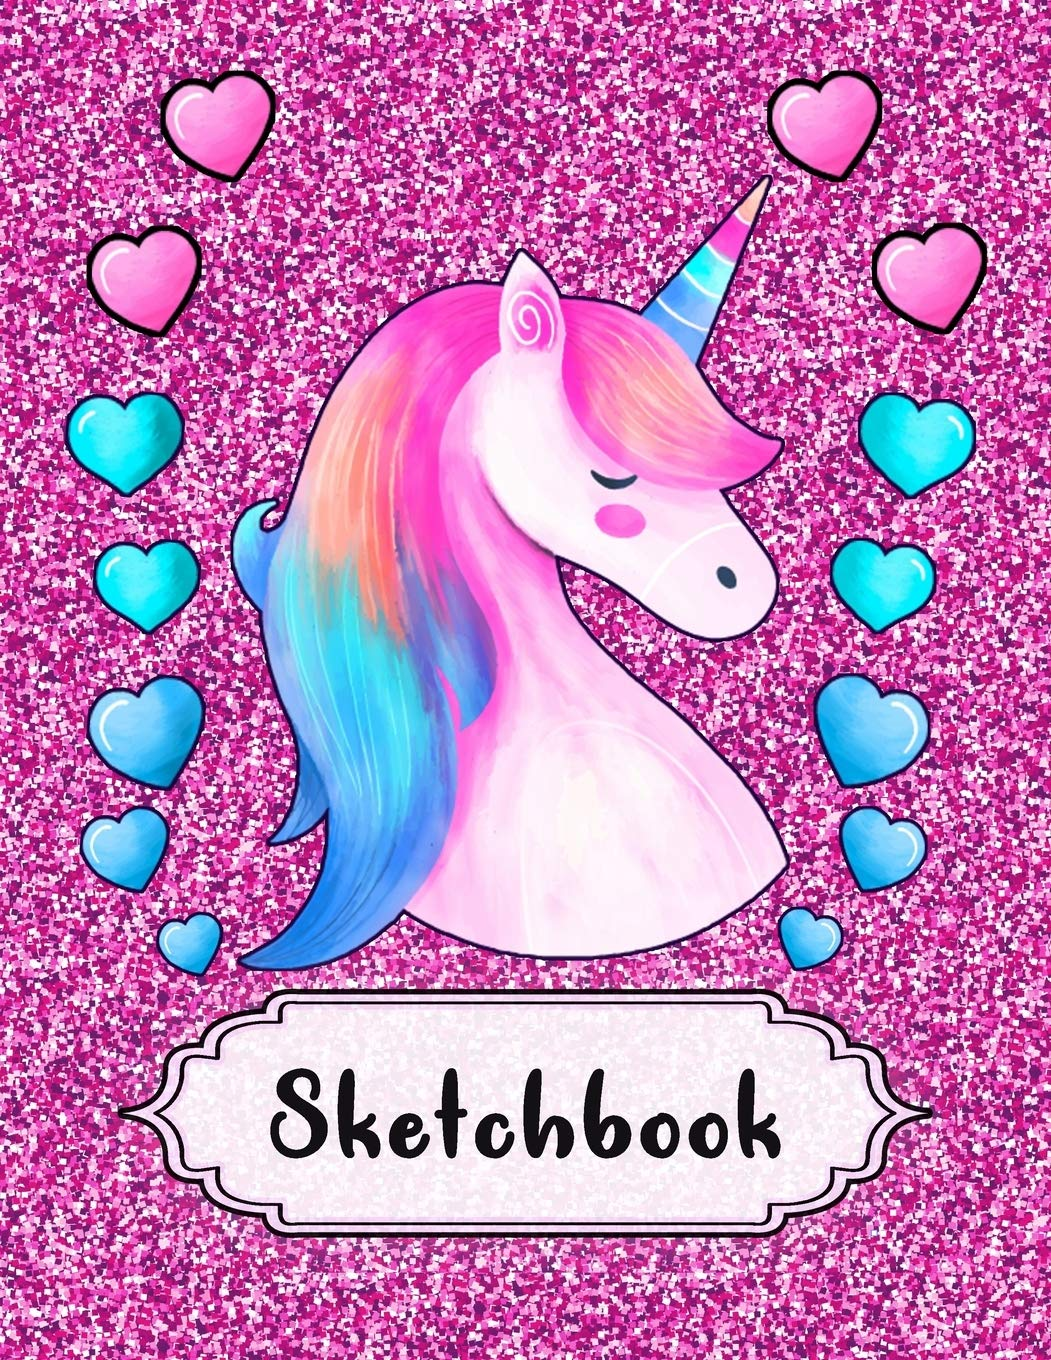 Amazon Com Sketchbook Cute Unicorn On Pink Glitter Sparkles Effect Background Large Blank Sketchbook For Girls 110 Pages 8 5 X 11 For Sketching Drawing Crayon Coloring Kids Drawing Books 9781696815253 Storytime Project